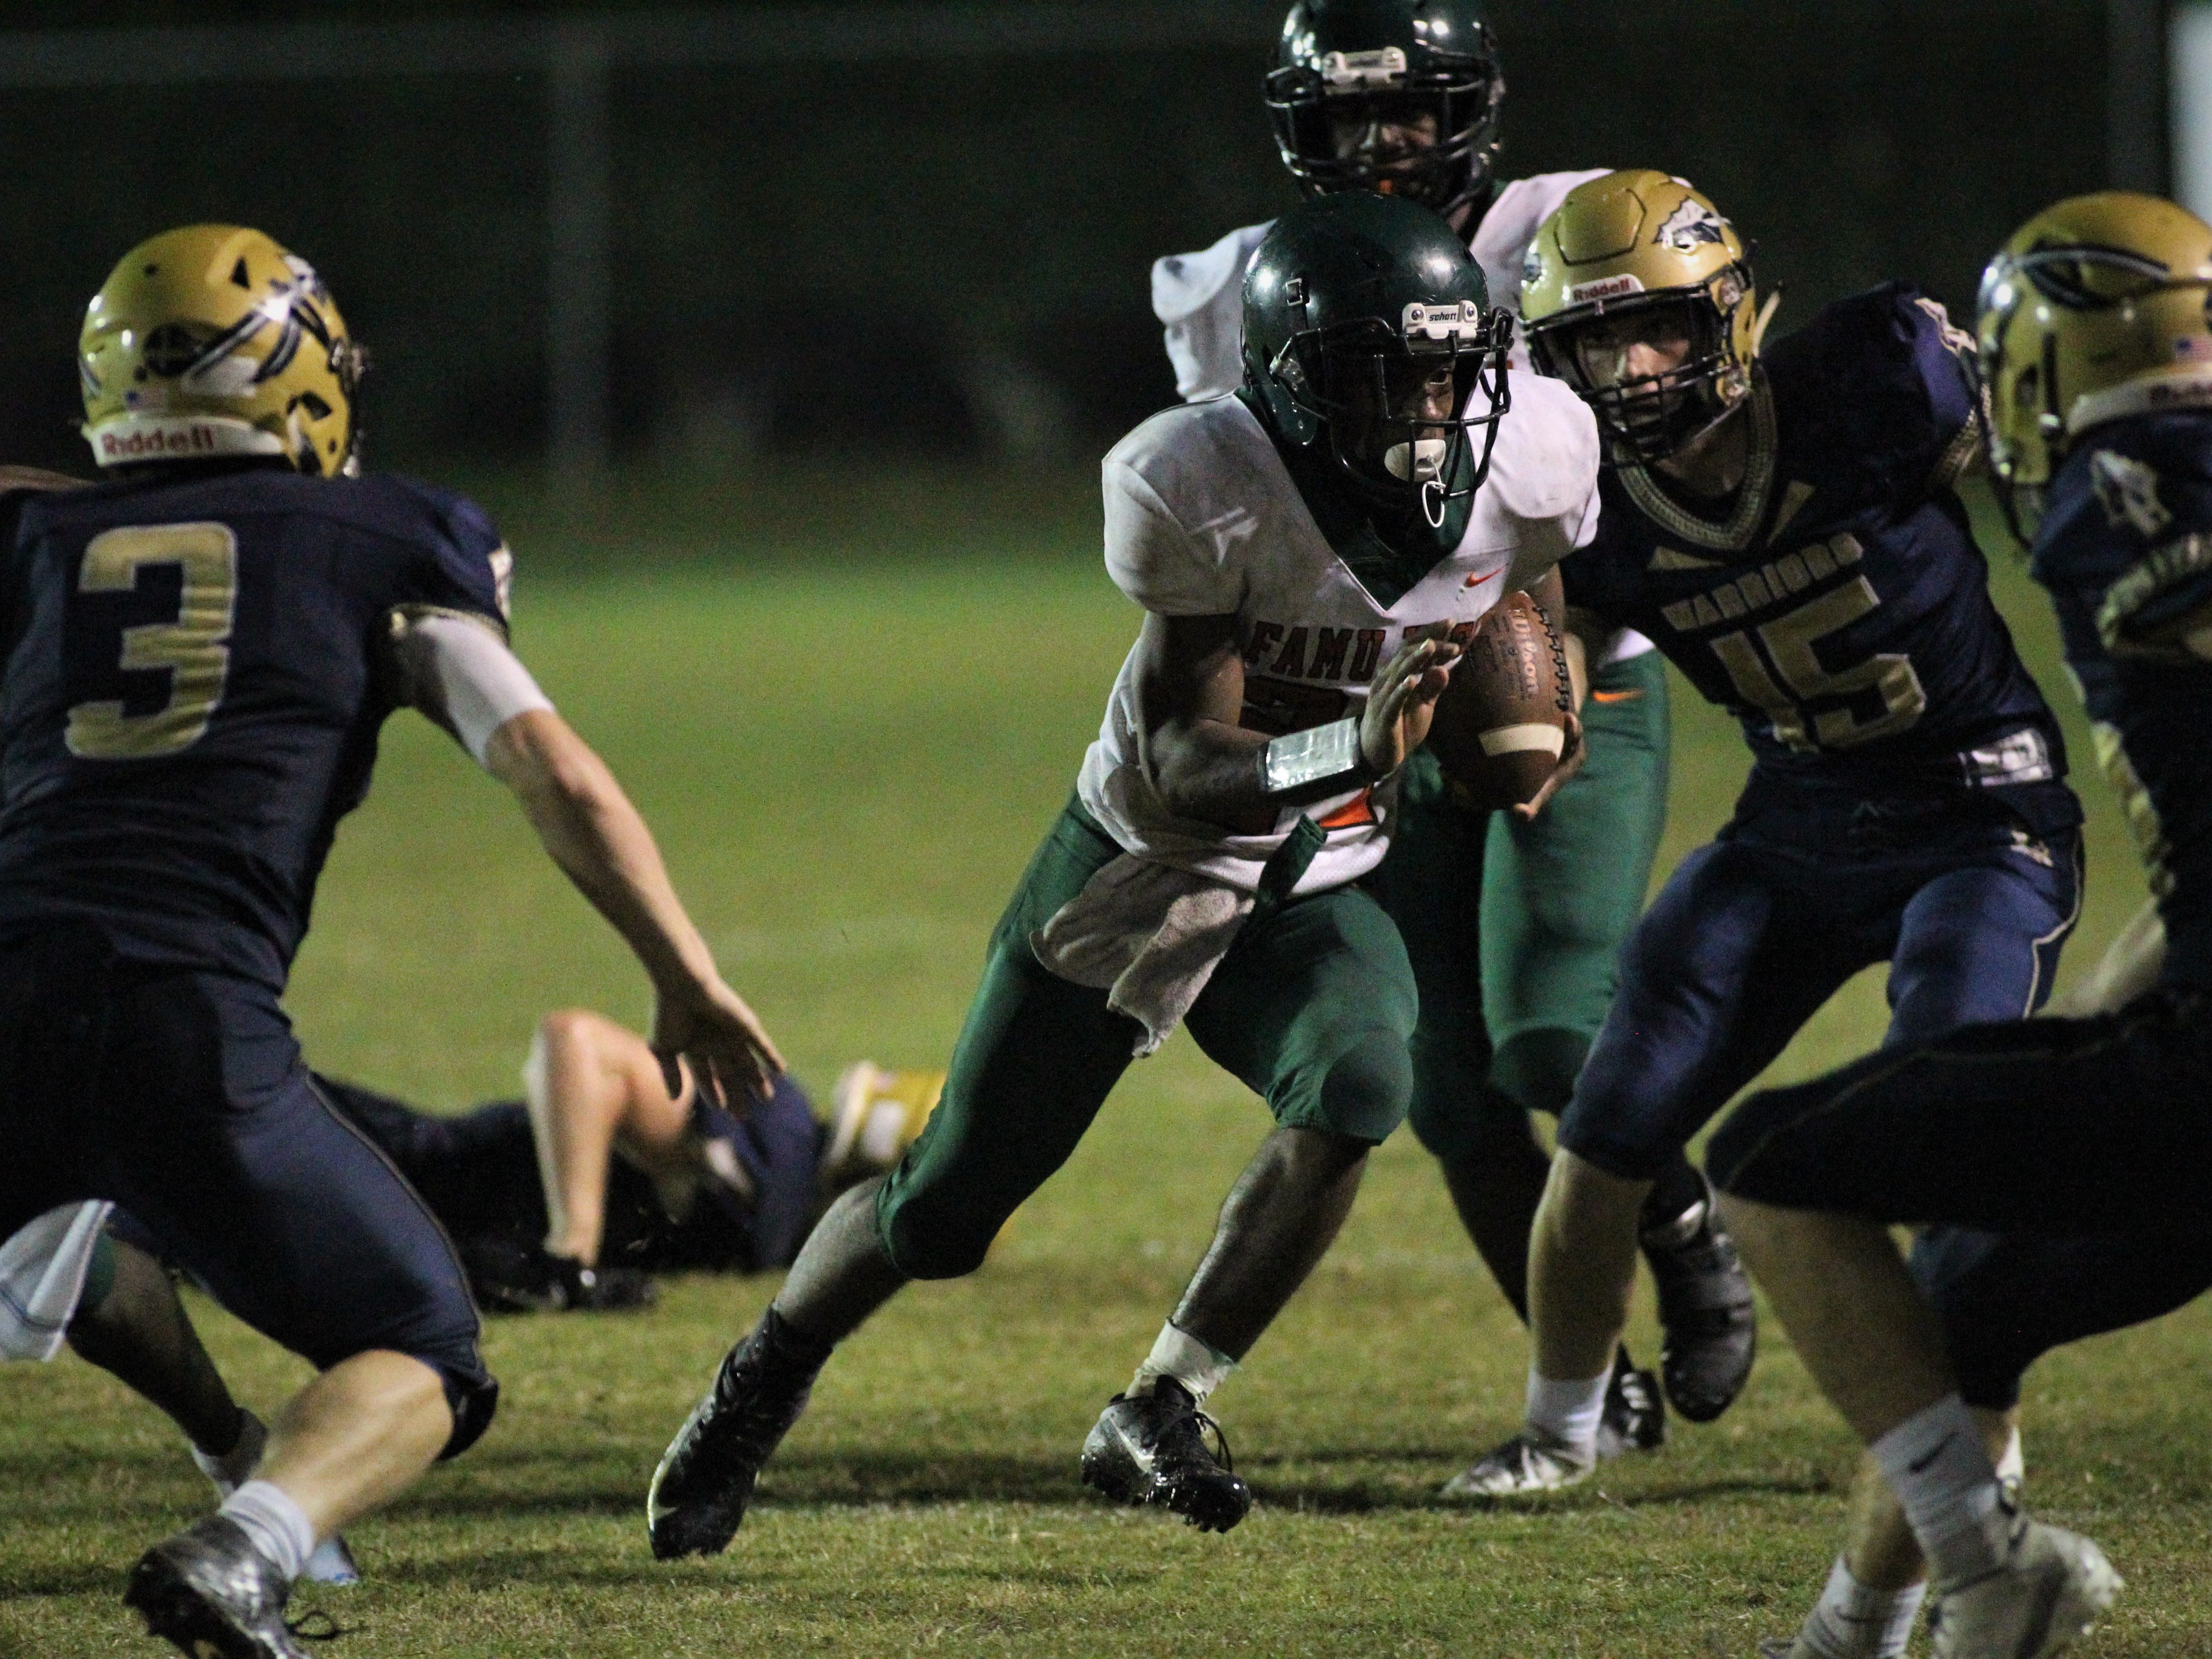 FAMU DRS defeated Aucilla Christian 28-7 in a Region 1-2A quarterfinal playoff game on Friday, Nov. 9, 2018.